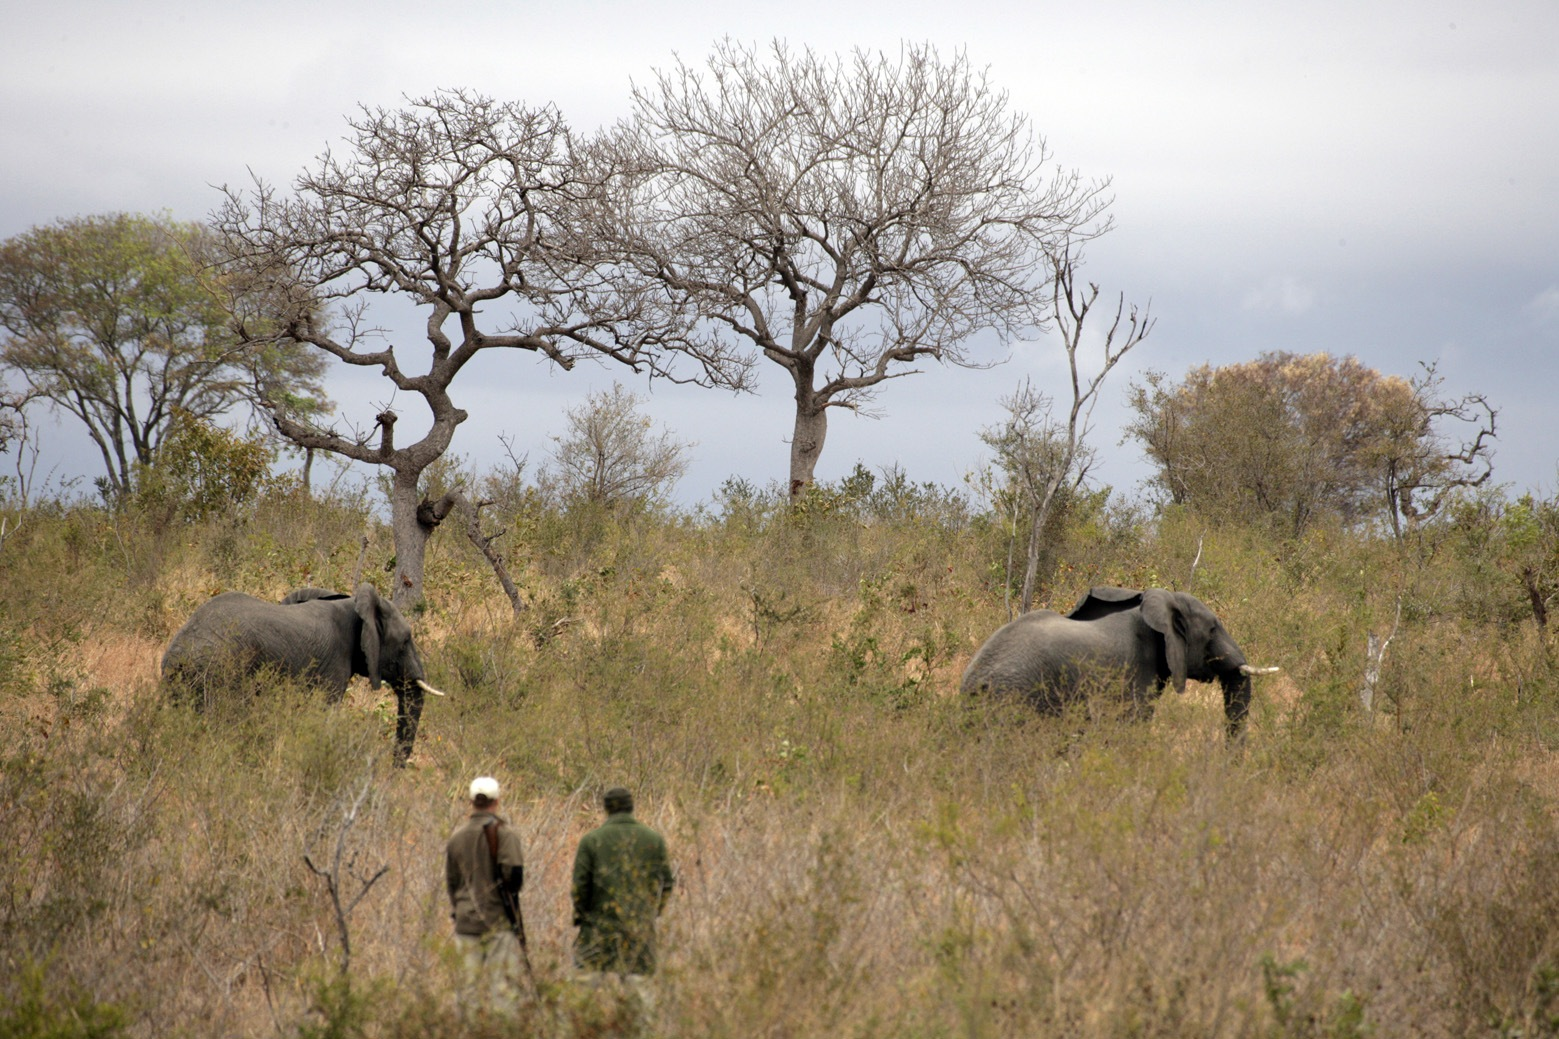 Alex and Renias walking with the majestic elephants